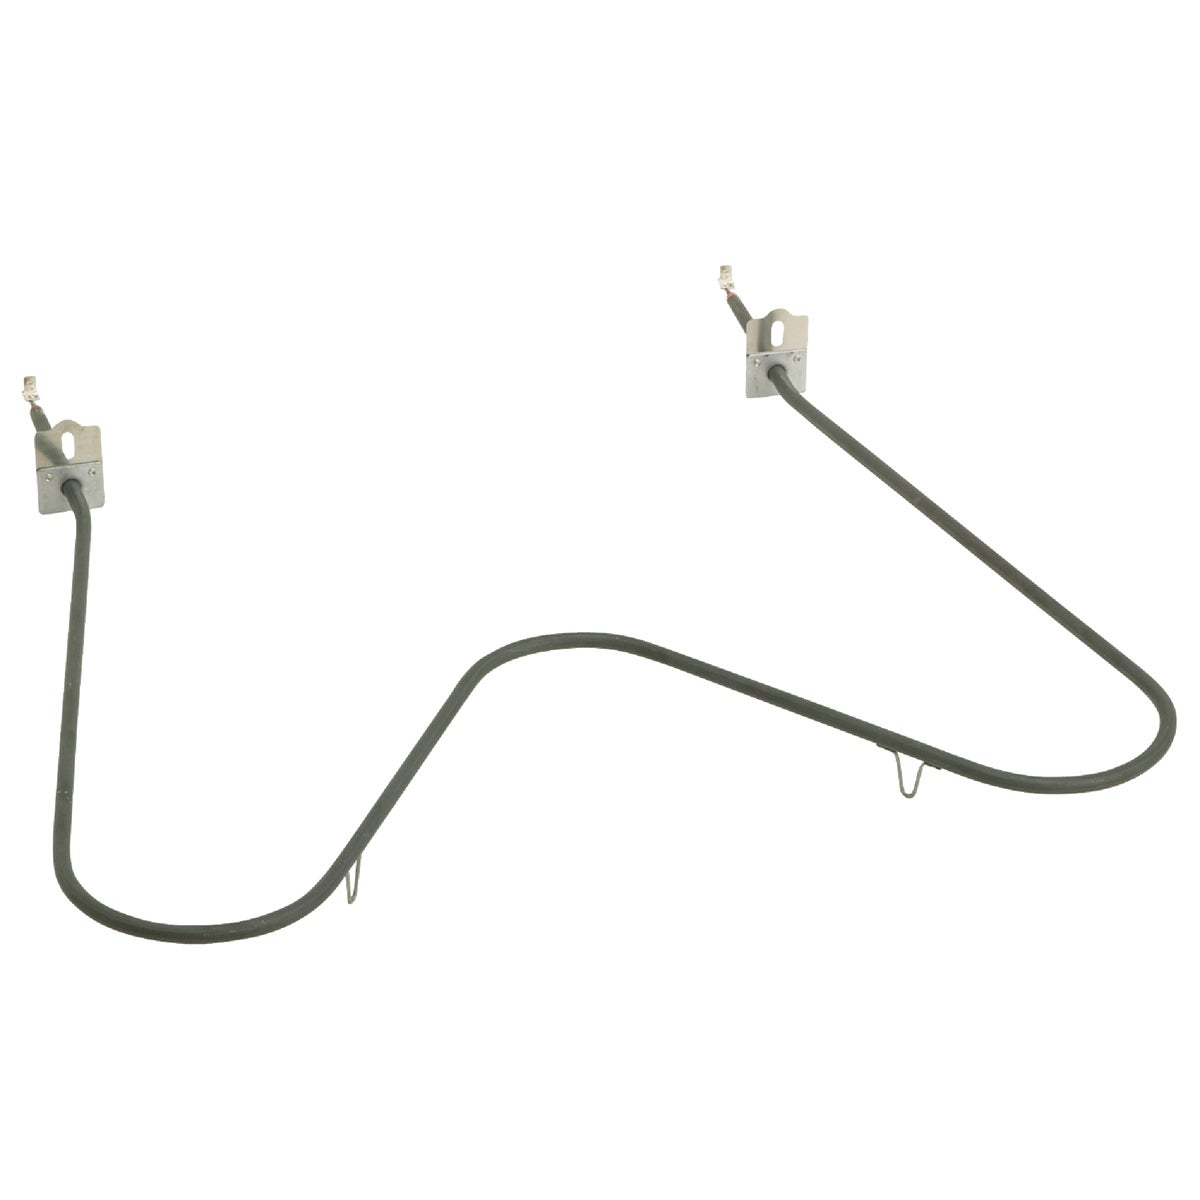 2400/1800W OVEN ELEMENT - 7501 by Range Kleen Mfg Inc